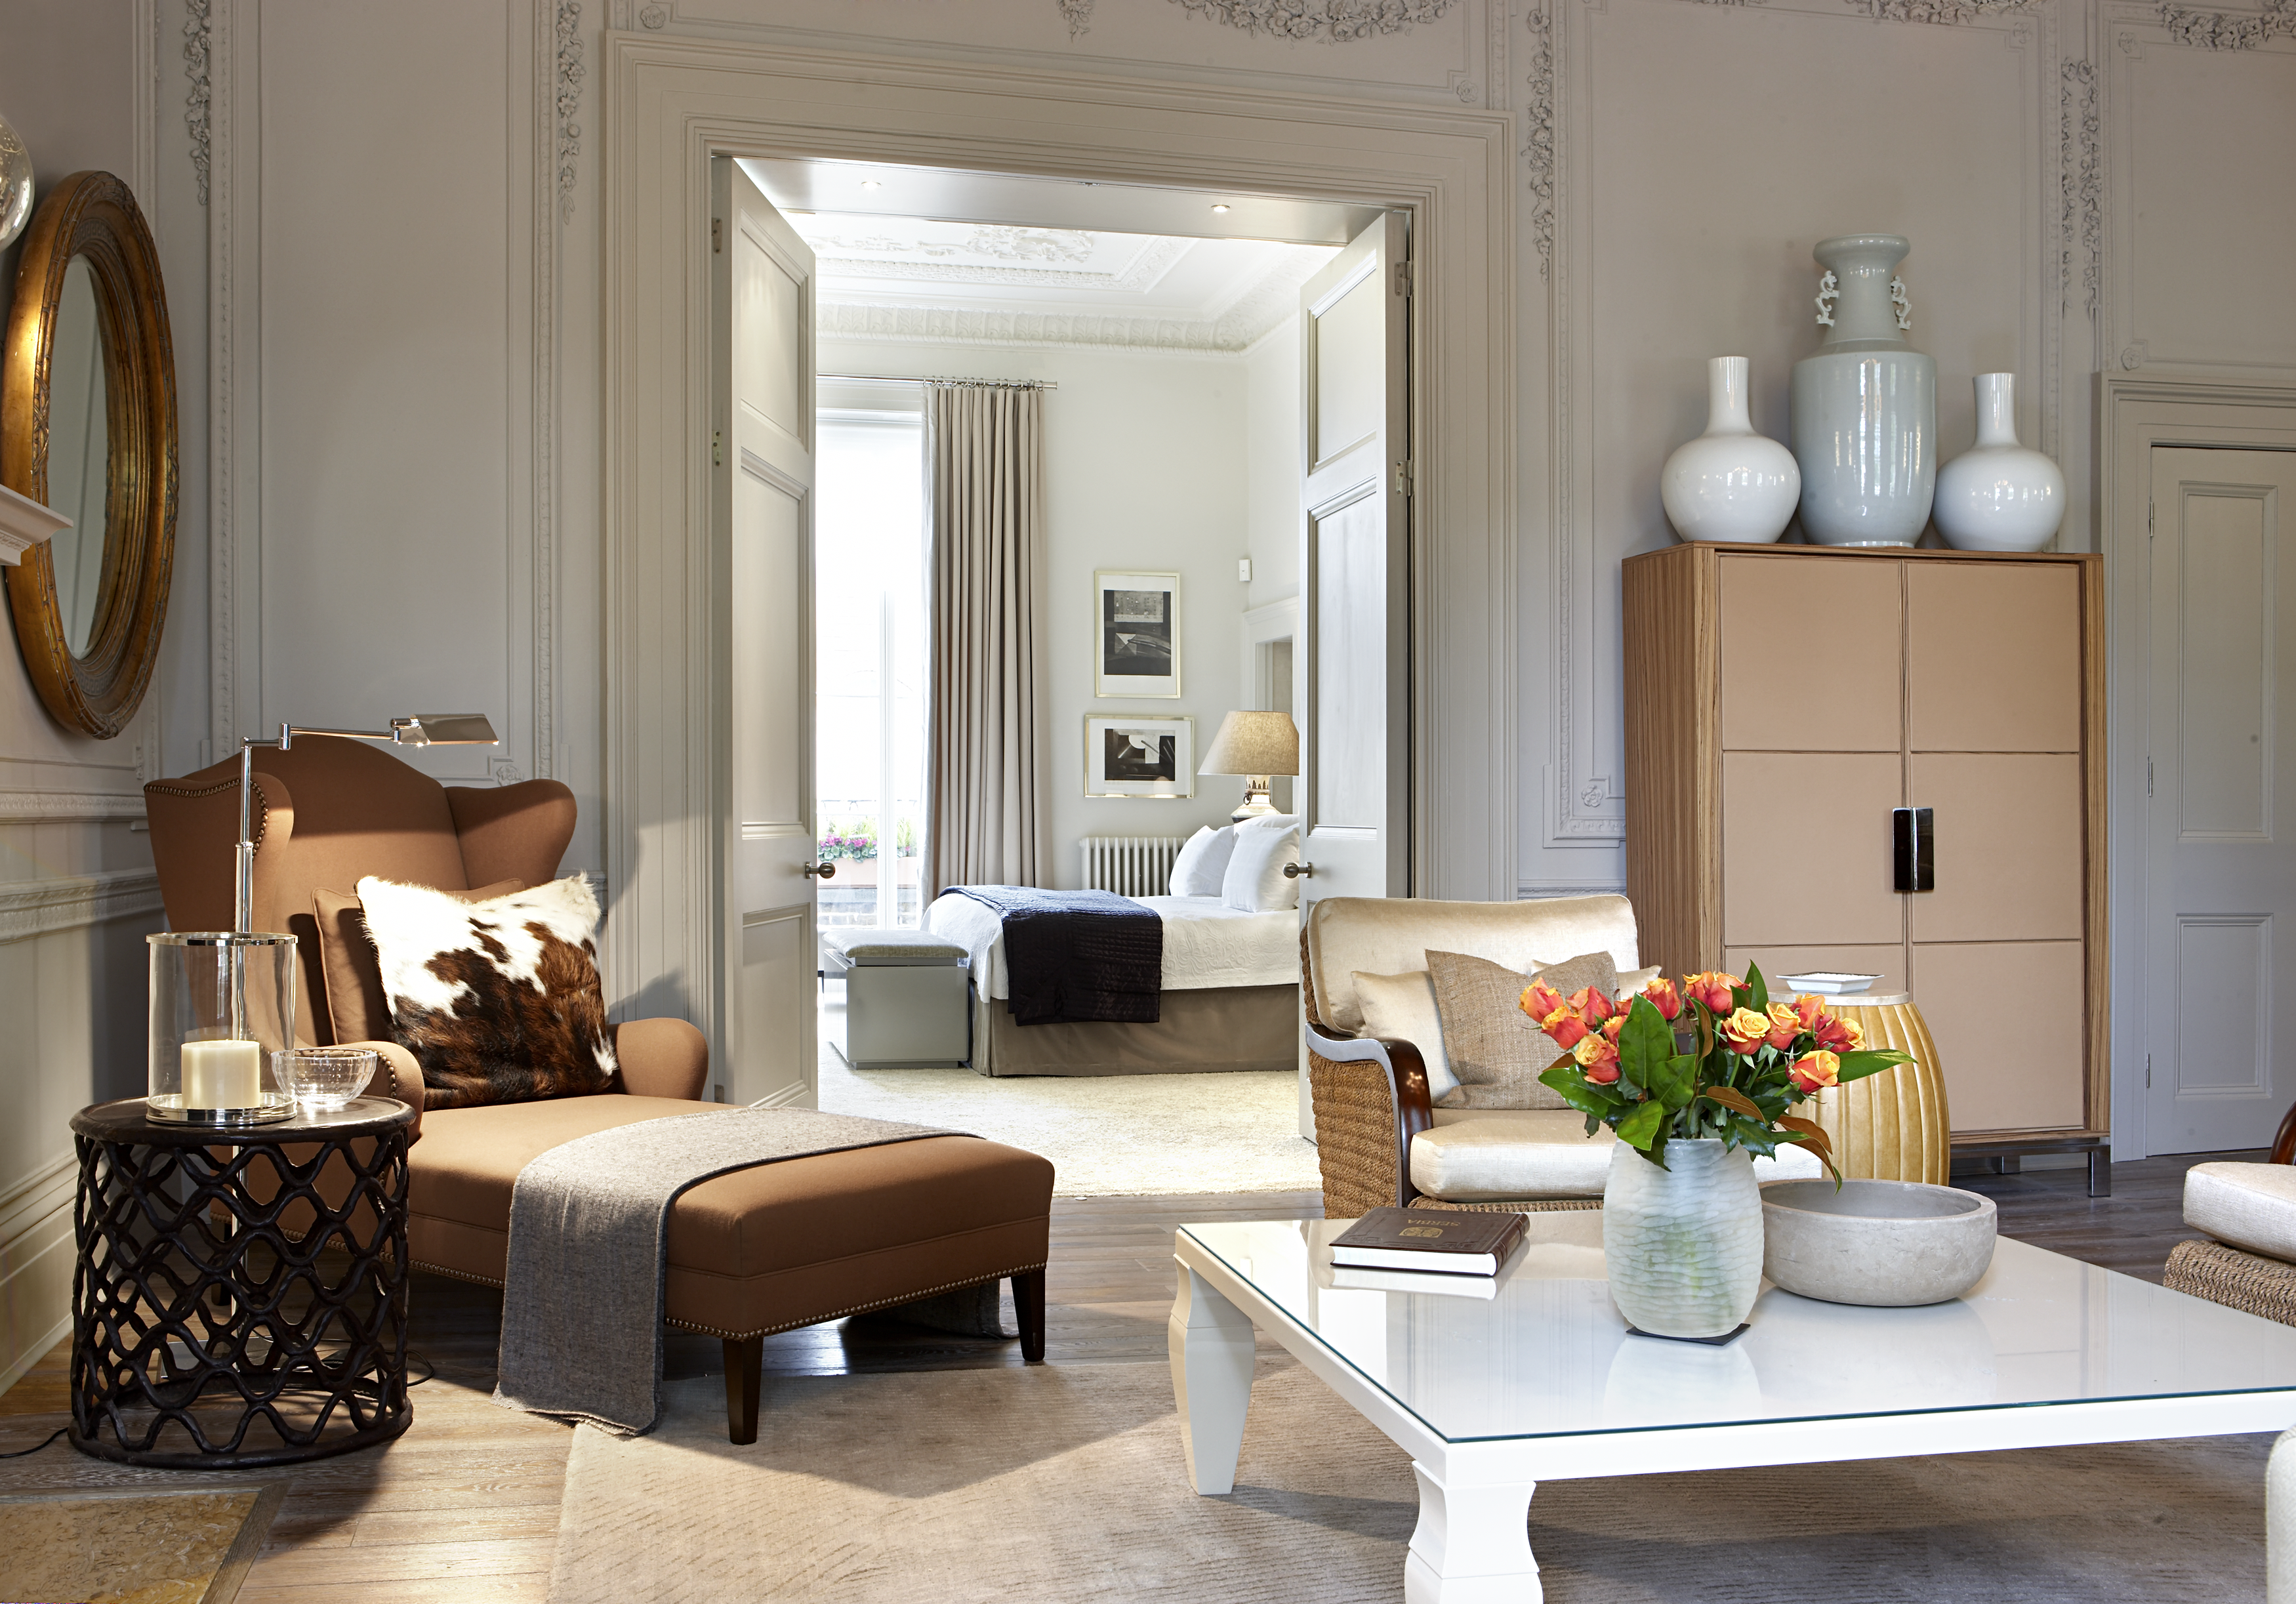 Classic Design Furniture London michael reeves – residential and commercial interior design